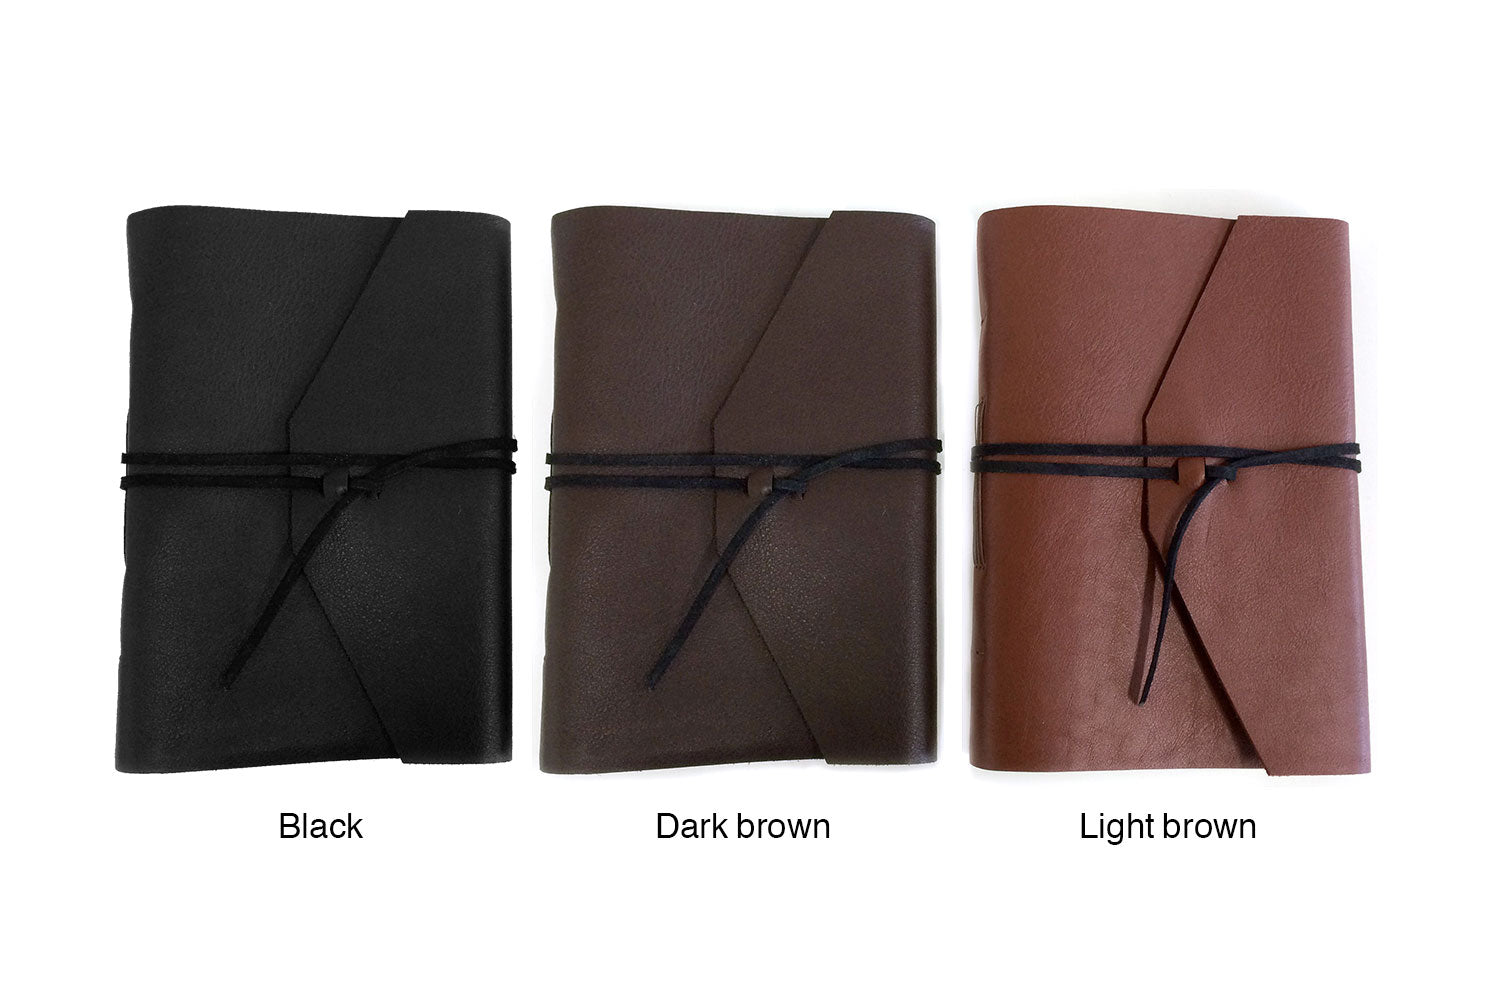 Journal kit from Bookshell comes in black leather, dark brown leather, light brown leather